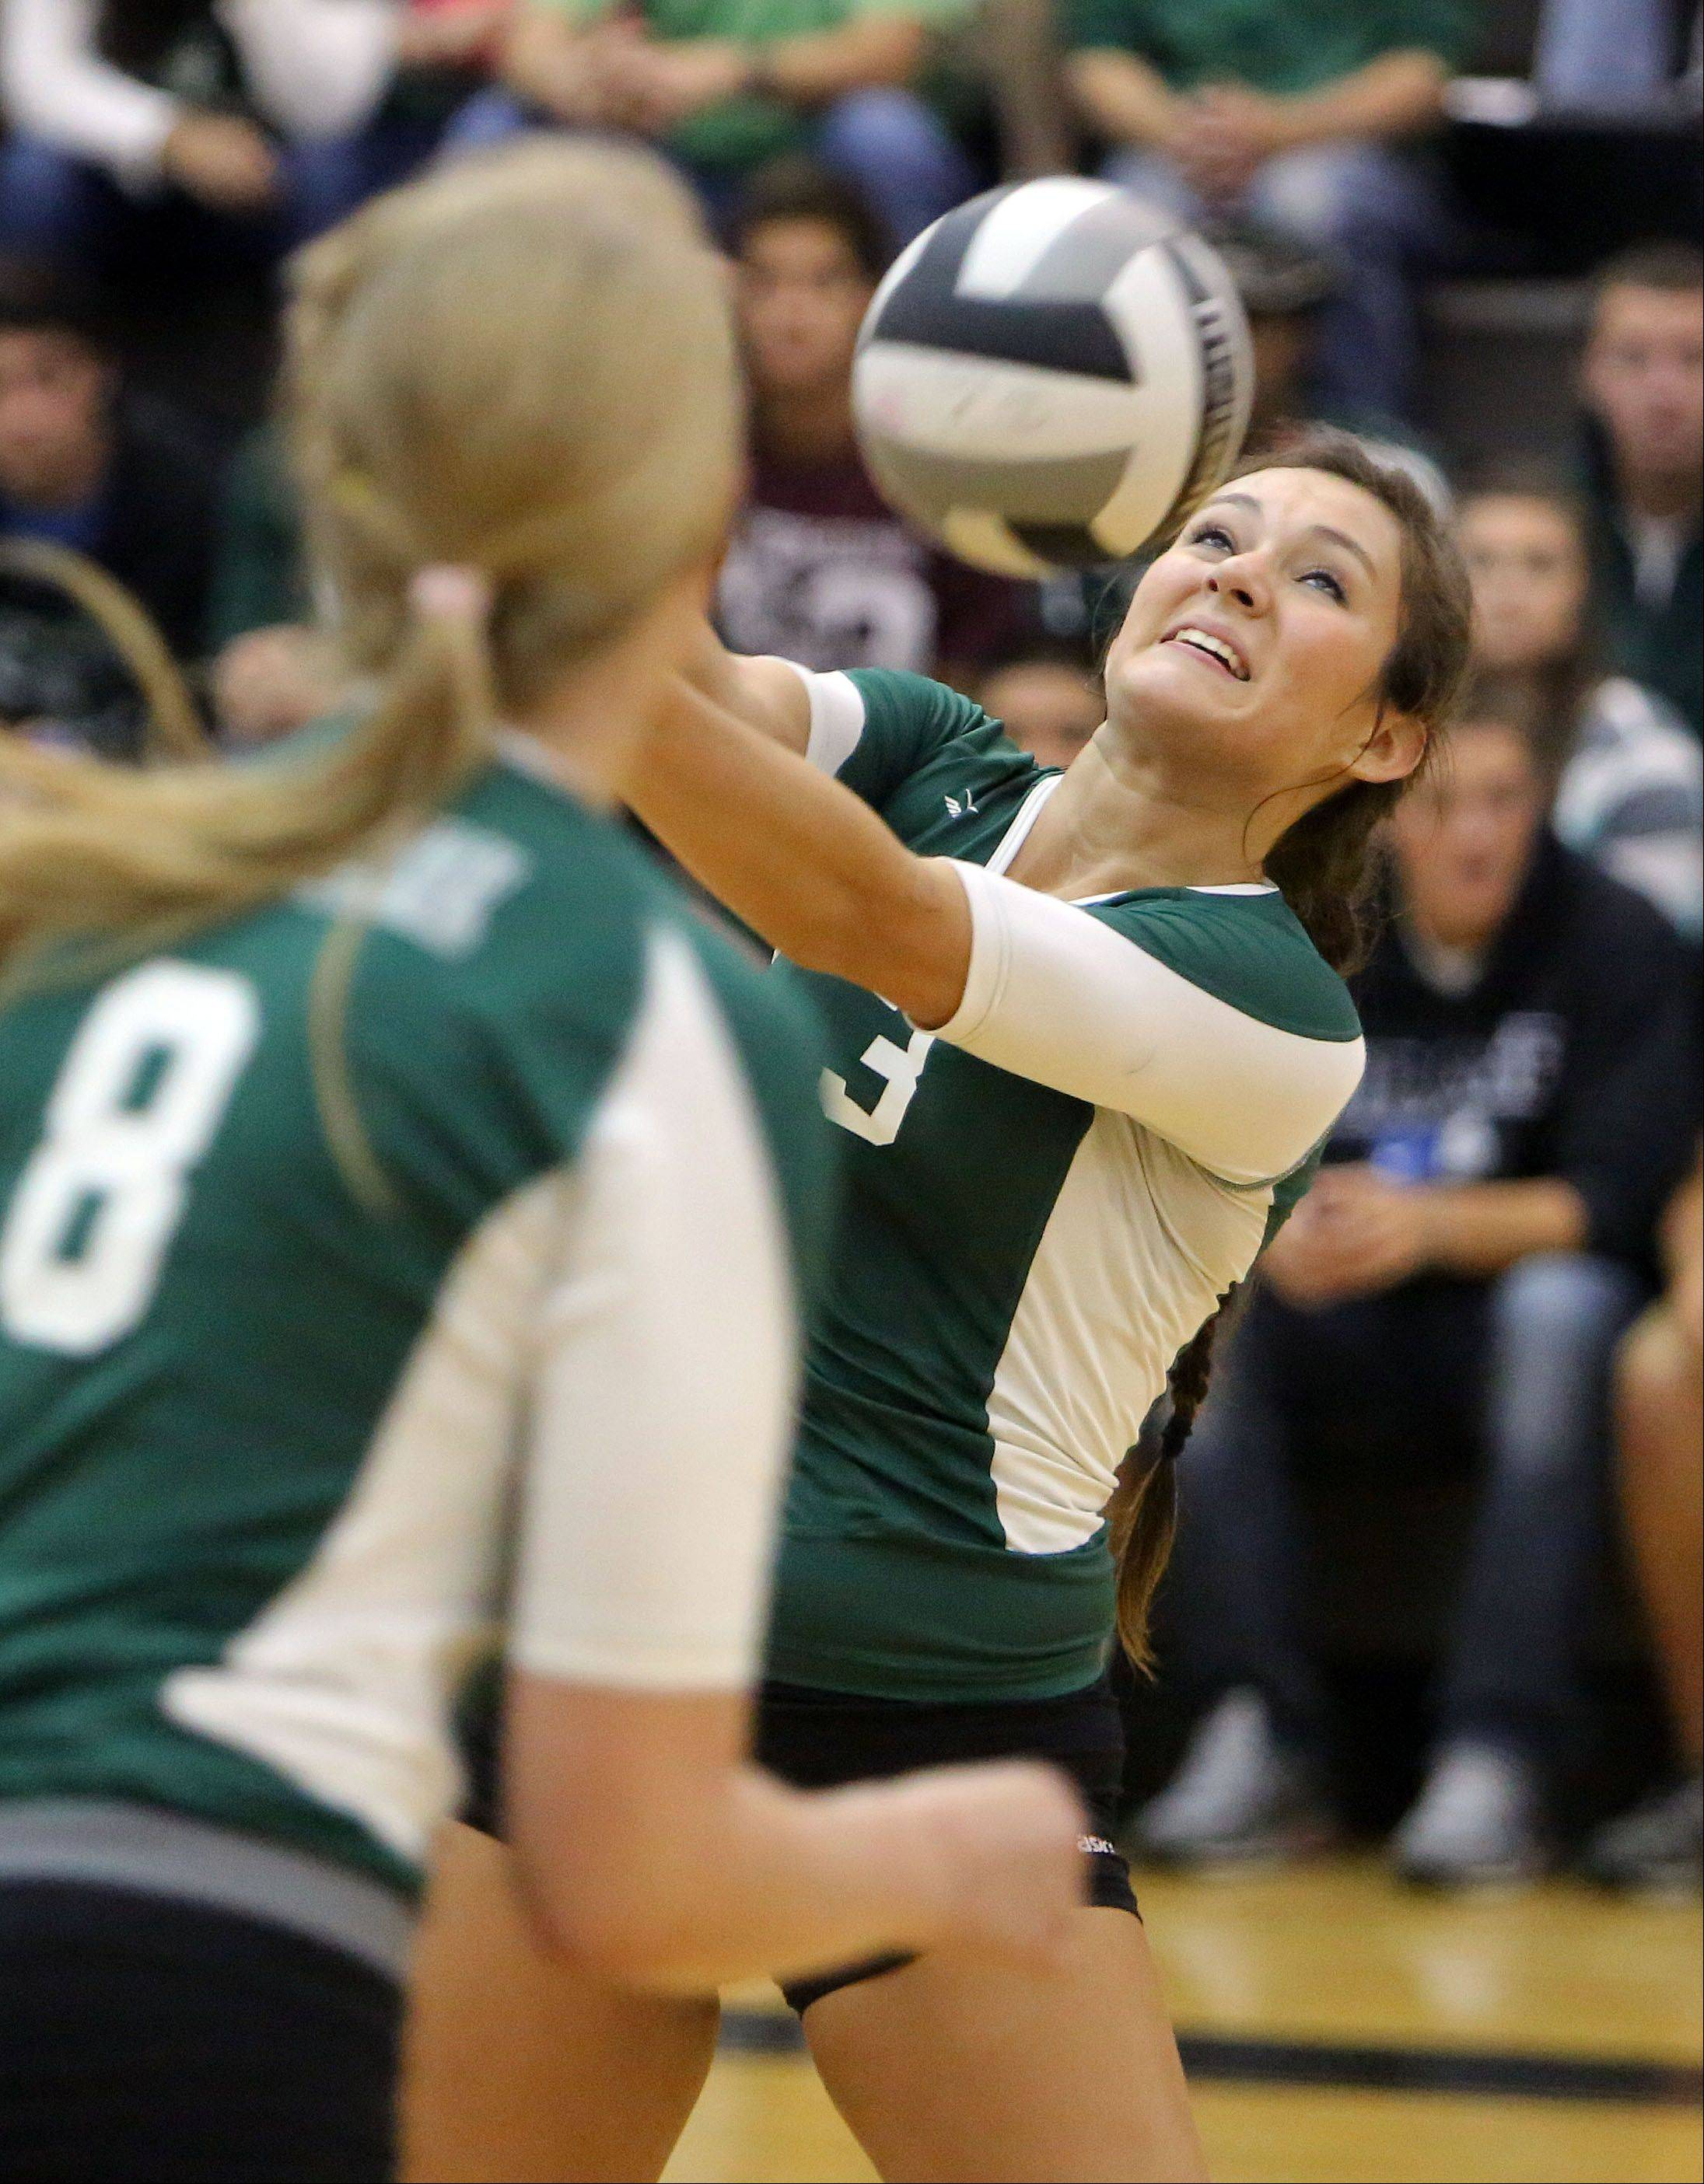 Grayslake Central's Gabi Casper returns a ball during Tuesday at Grayslake North.